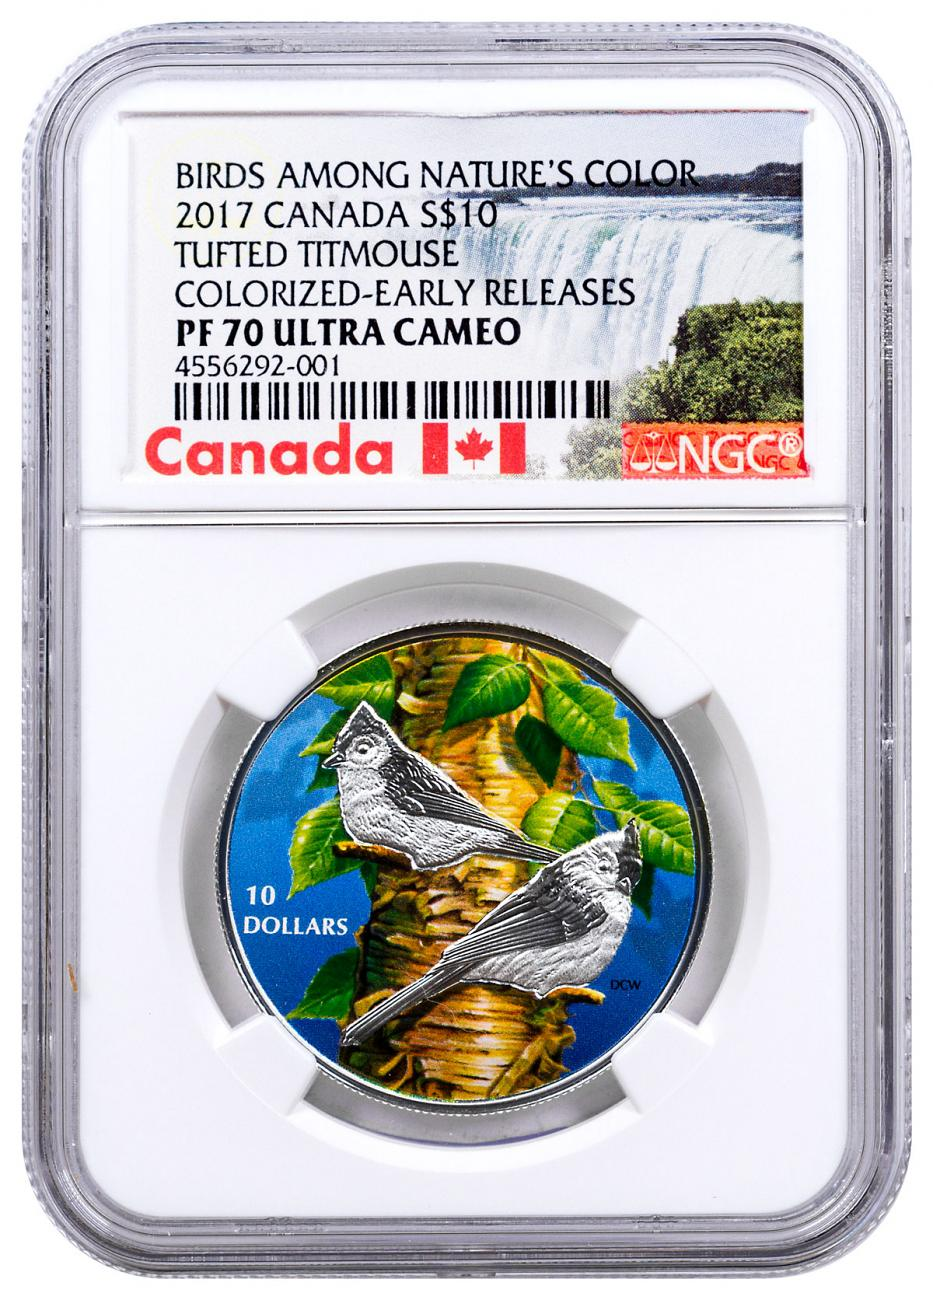 2017 Canada Birds Among Nature's Colors - Tufted Titmouse 1/2 oz Silver Colorized Proof $10 Coin NGC PF70 UC ER Exclusive Canada Label